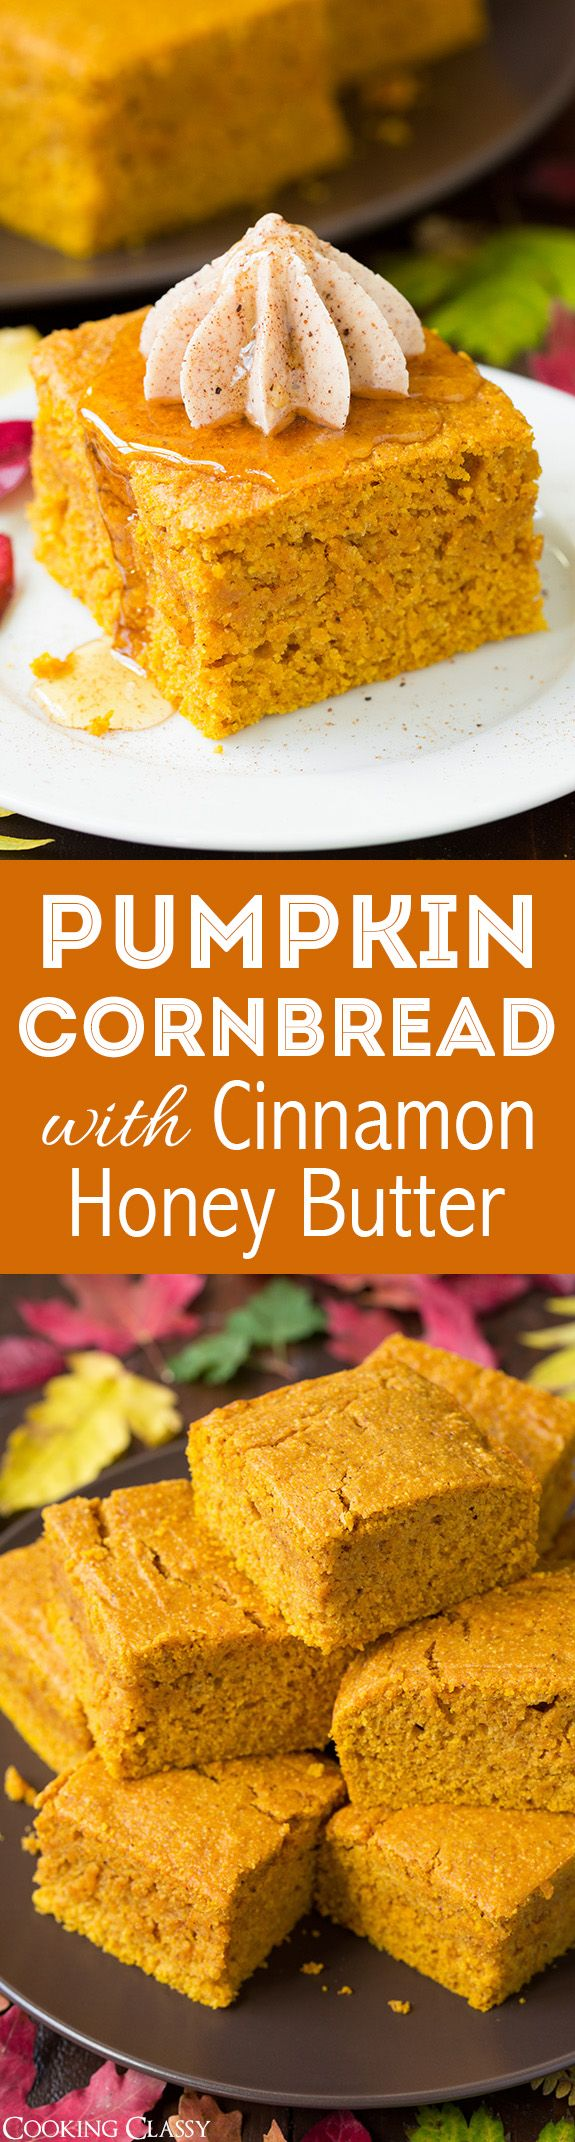 Pumpkin Cornbread with Cinnamon Honey Butter - this is the ULTIMATE fall…